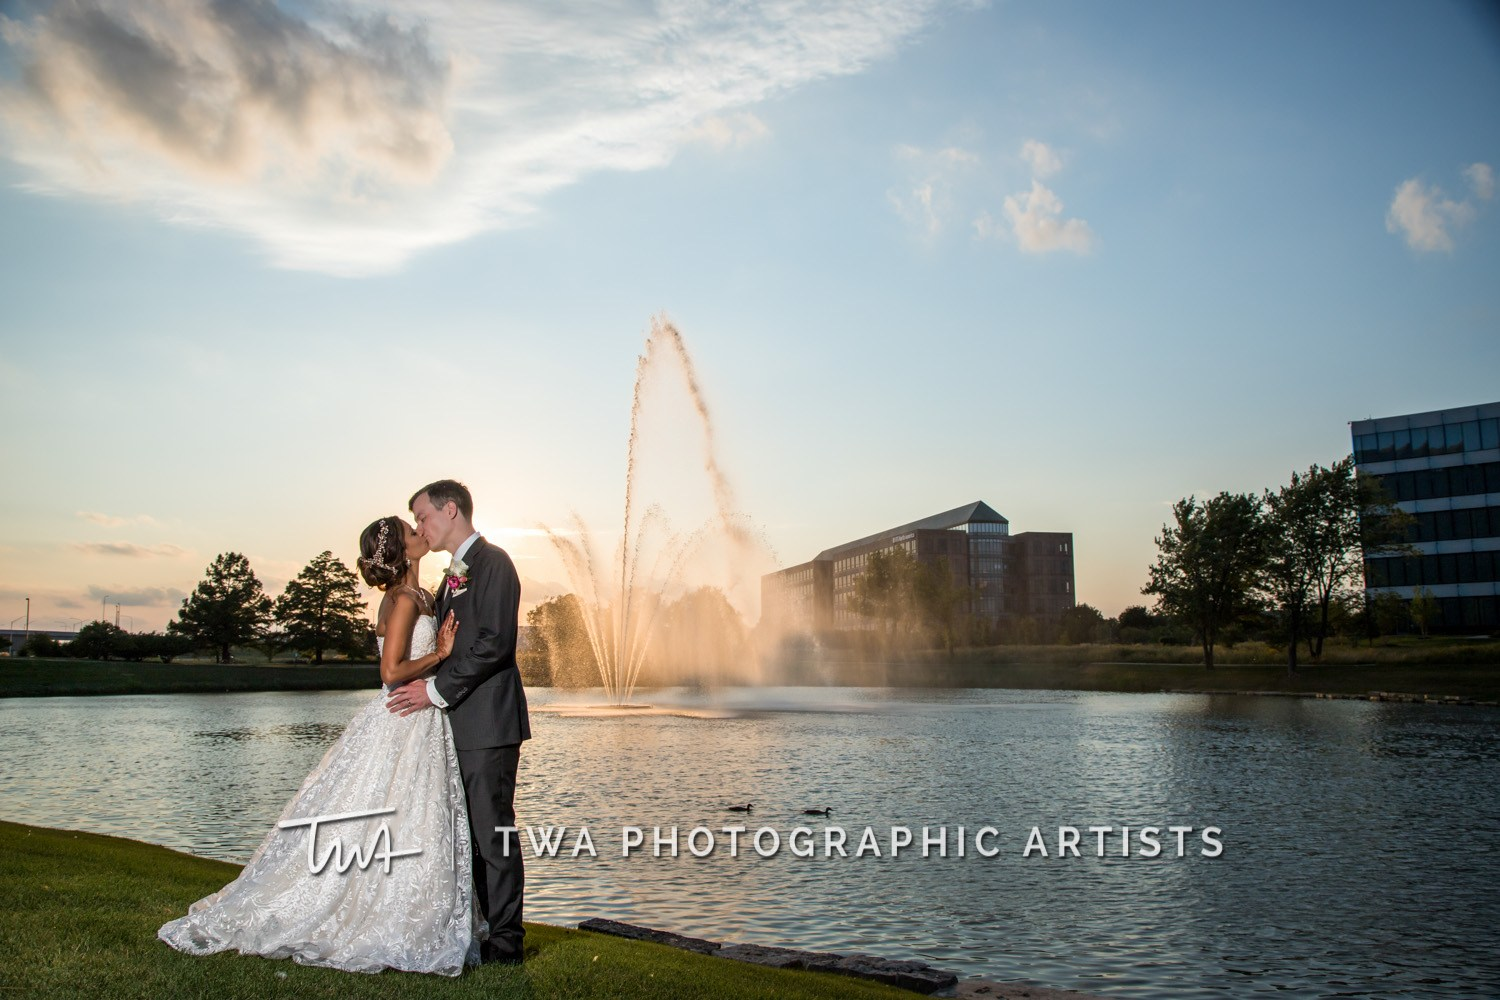 Chicago-Wedding-Photographer-TWA-Photographic-Artists-Shah_Billings_WM_TL-1214